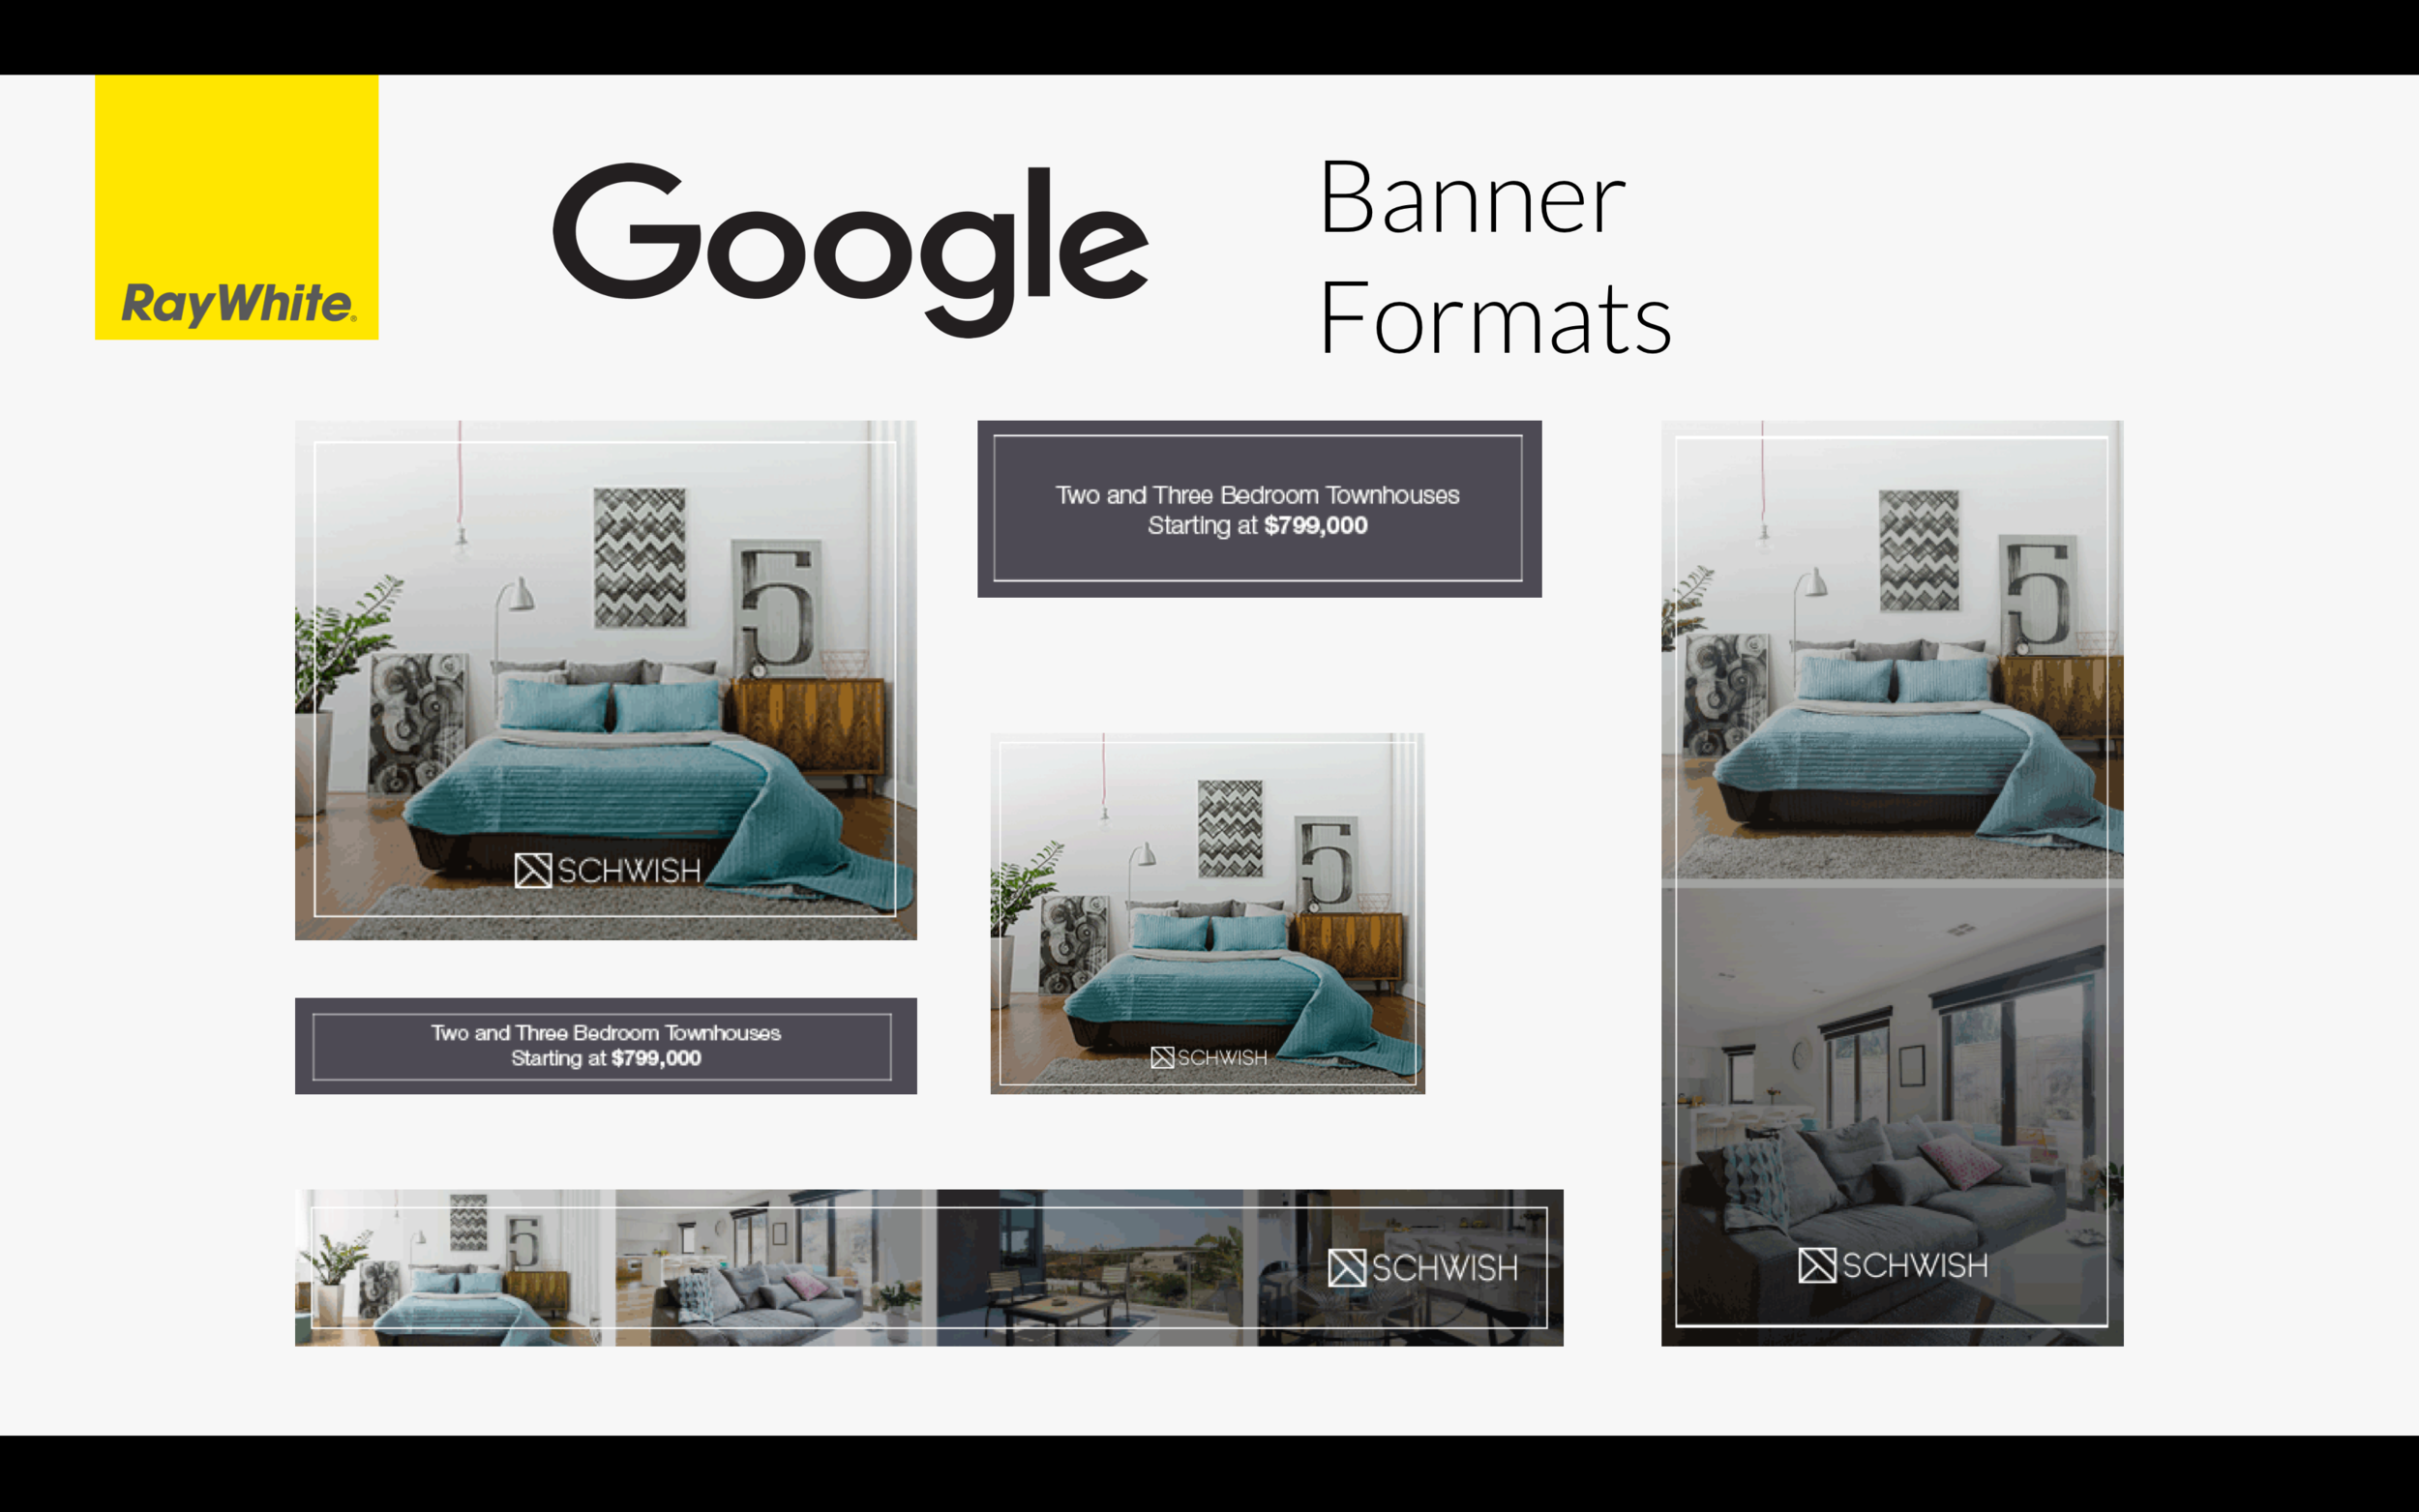 Google banners - Targeted adds